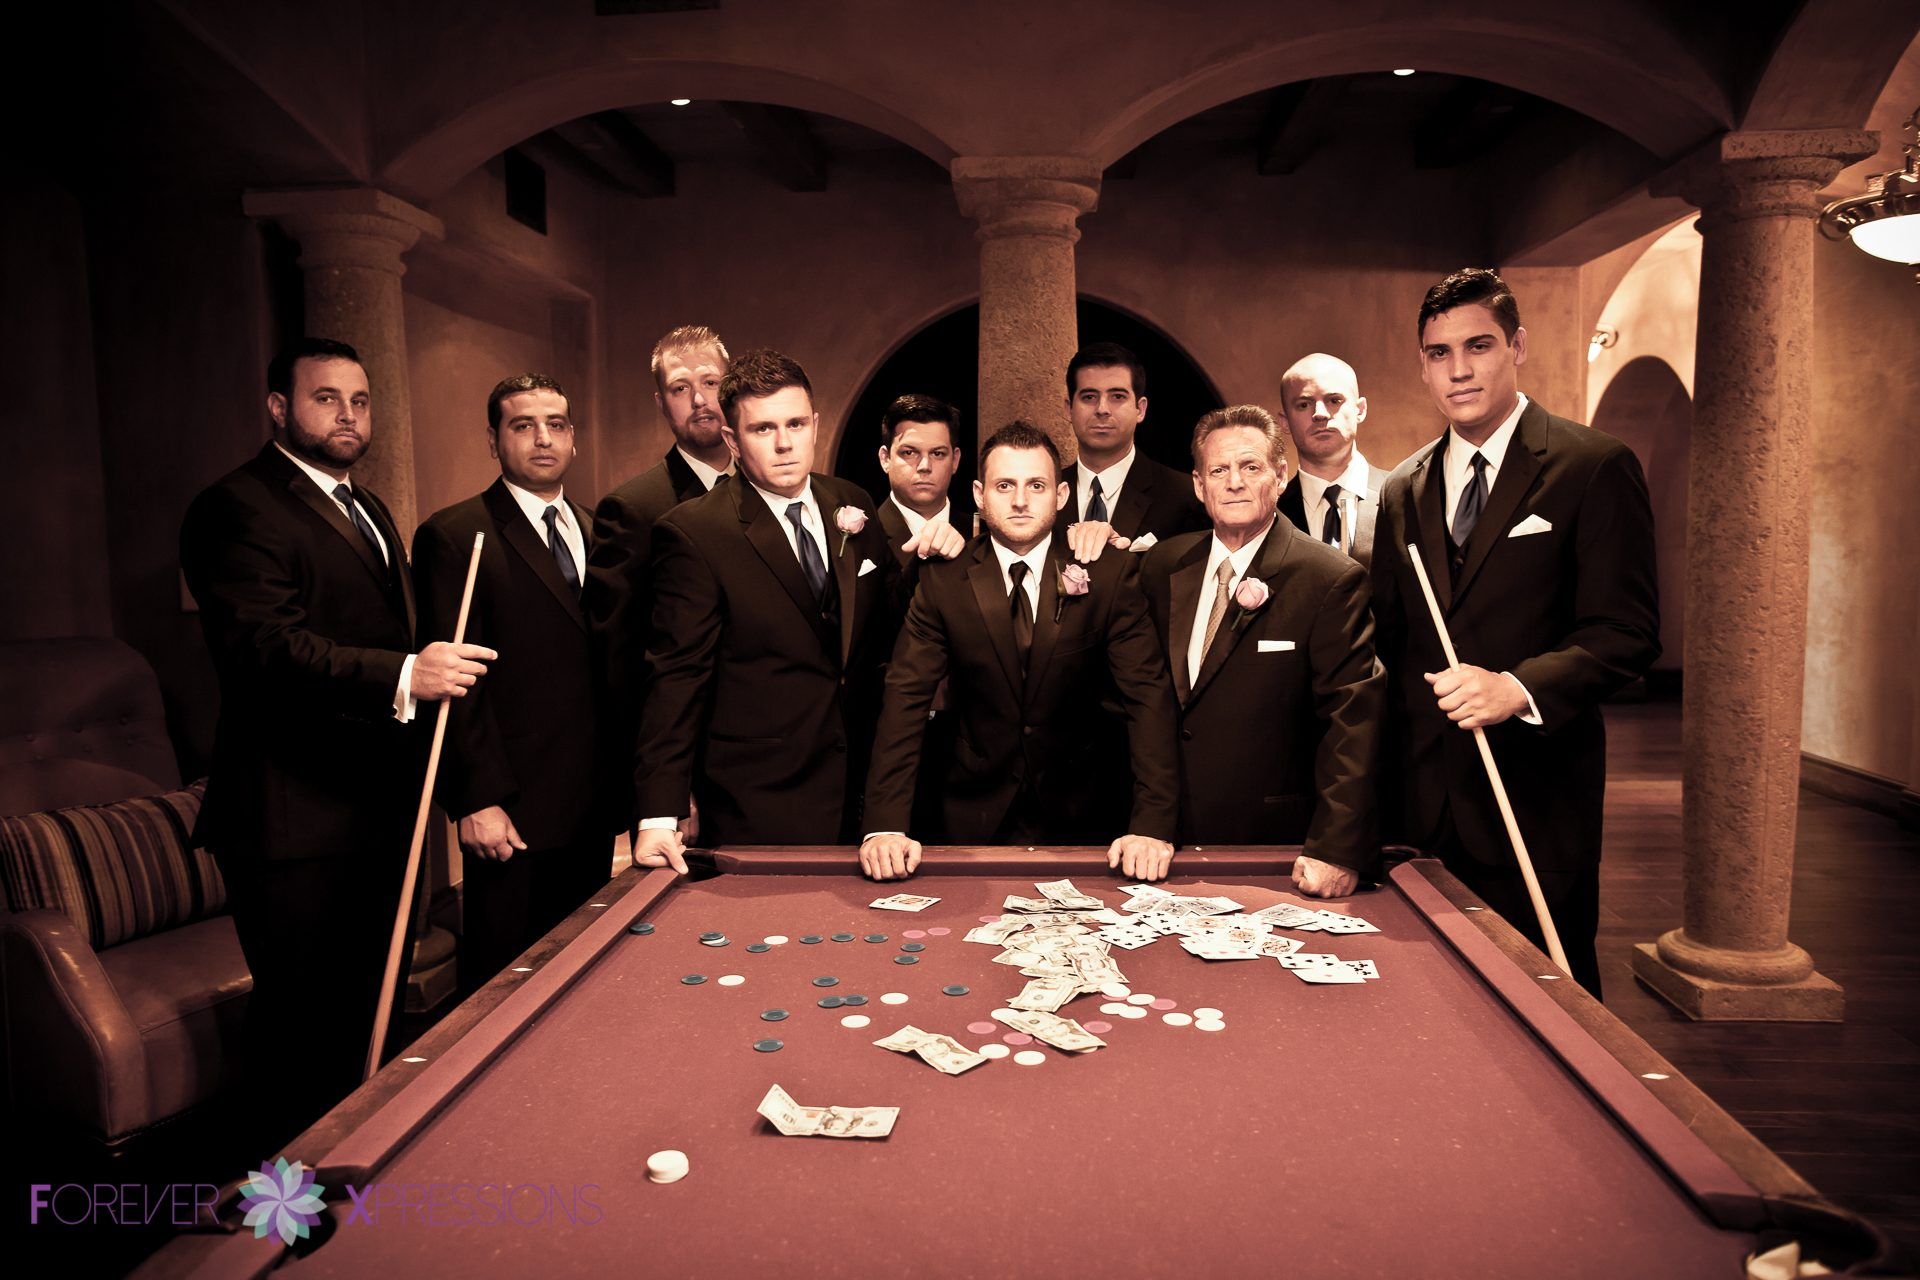 Groom with Groomsmen Pool Table with Money.